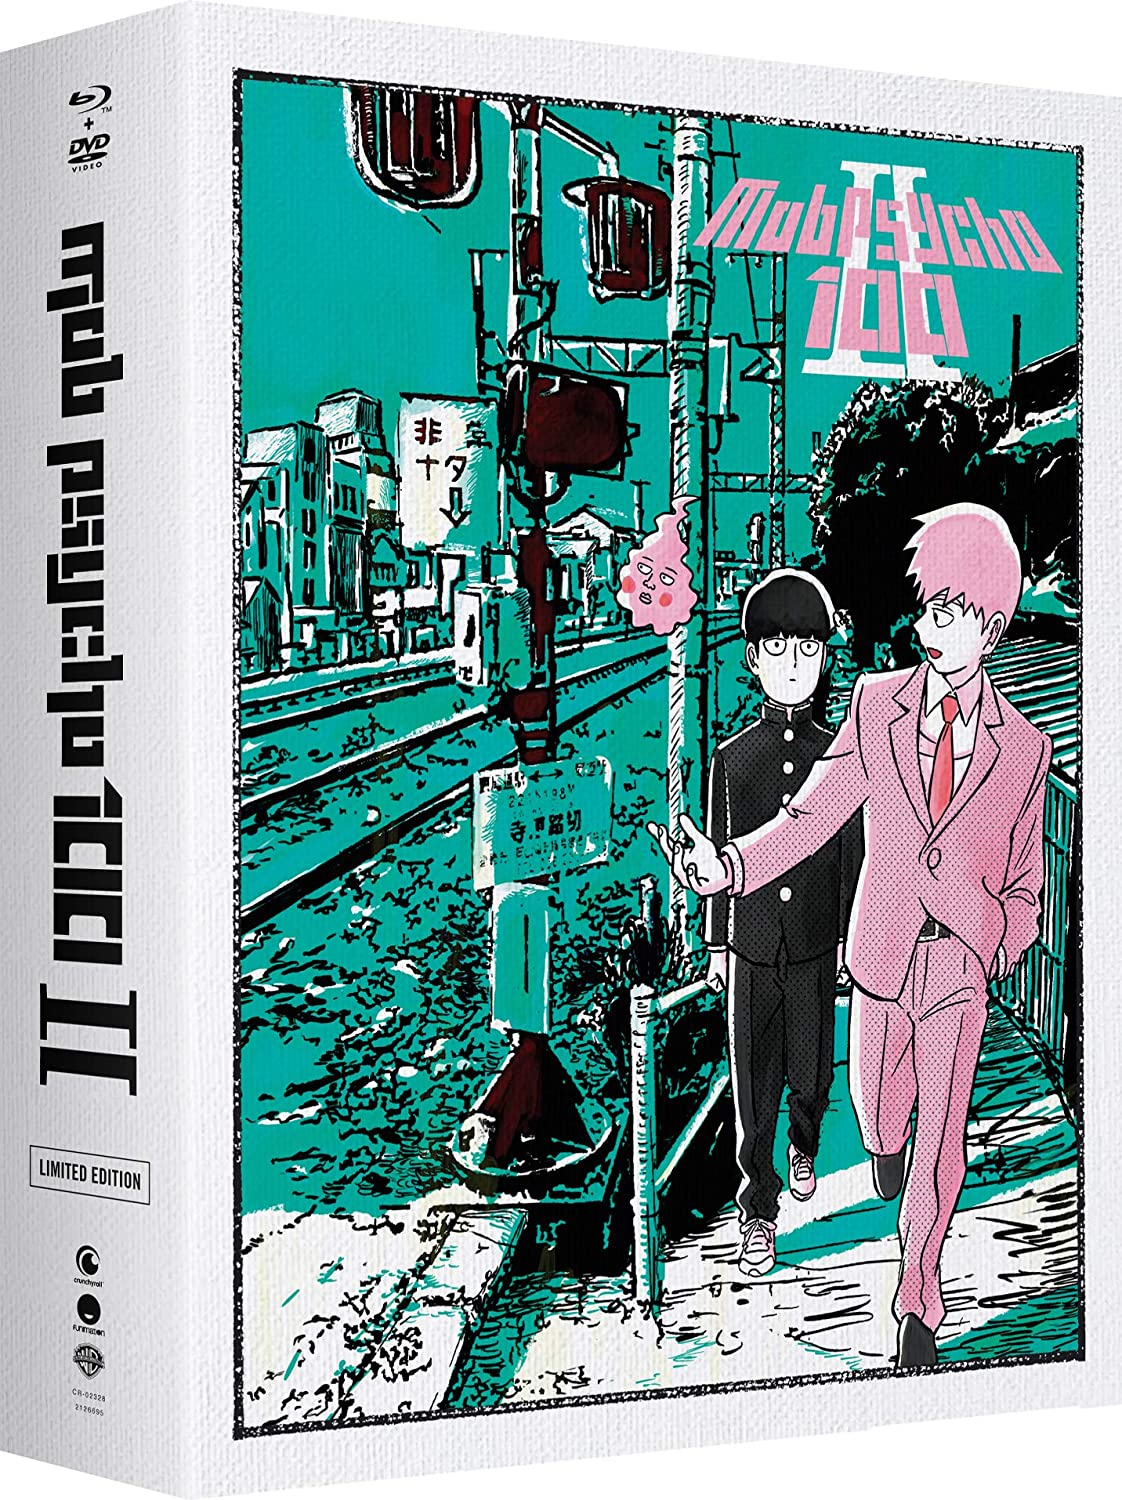 Amazon Opens Pre-Orders For Mob Psycho 100 II Limited Edition Blu-Ray + DVD Set